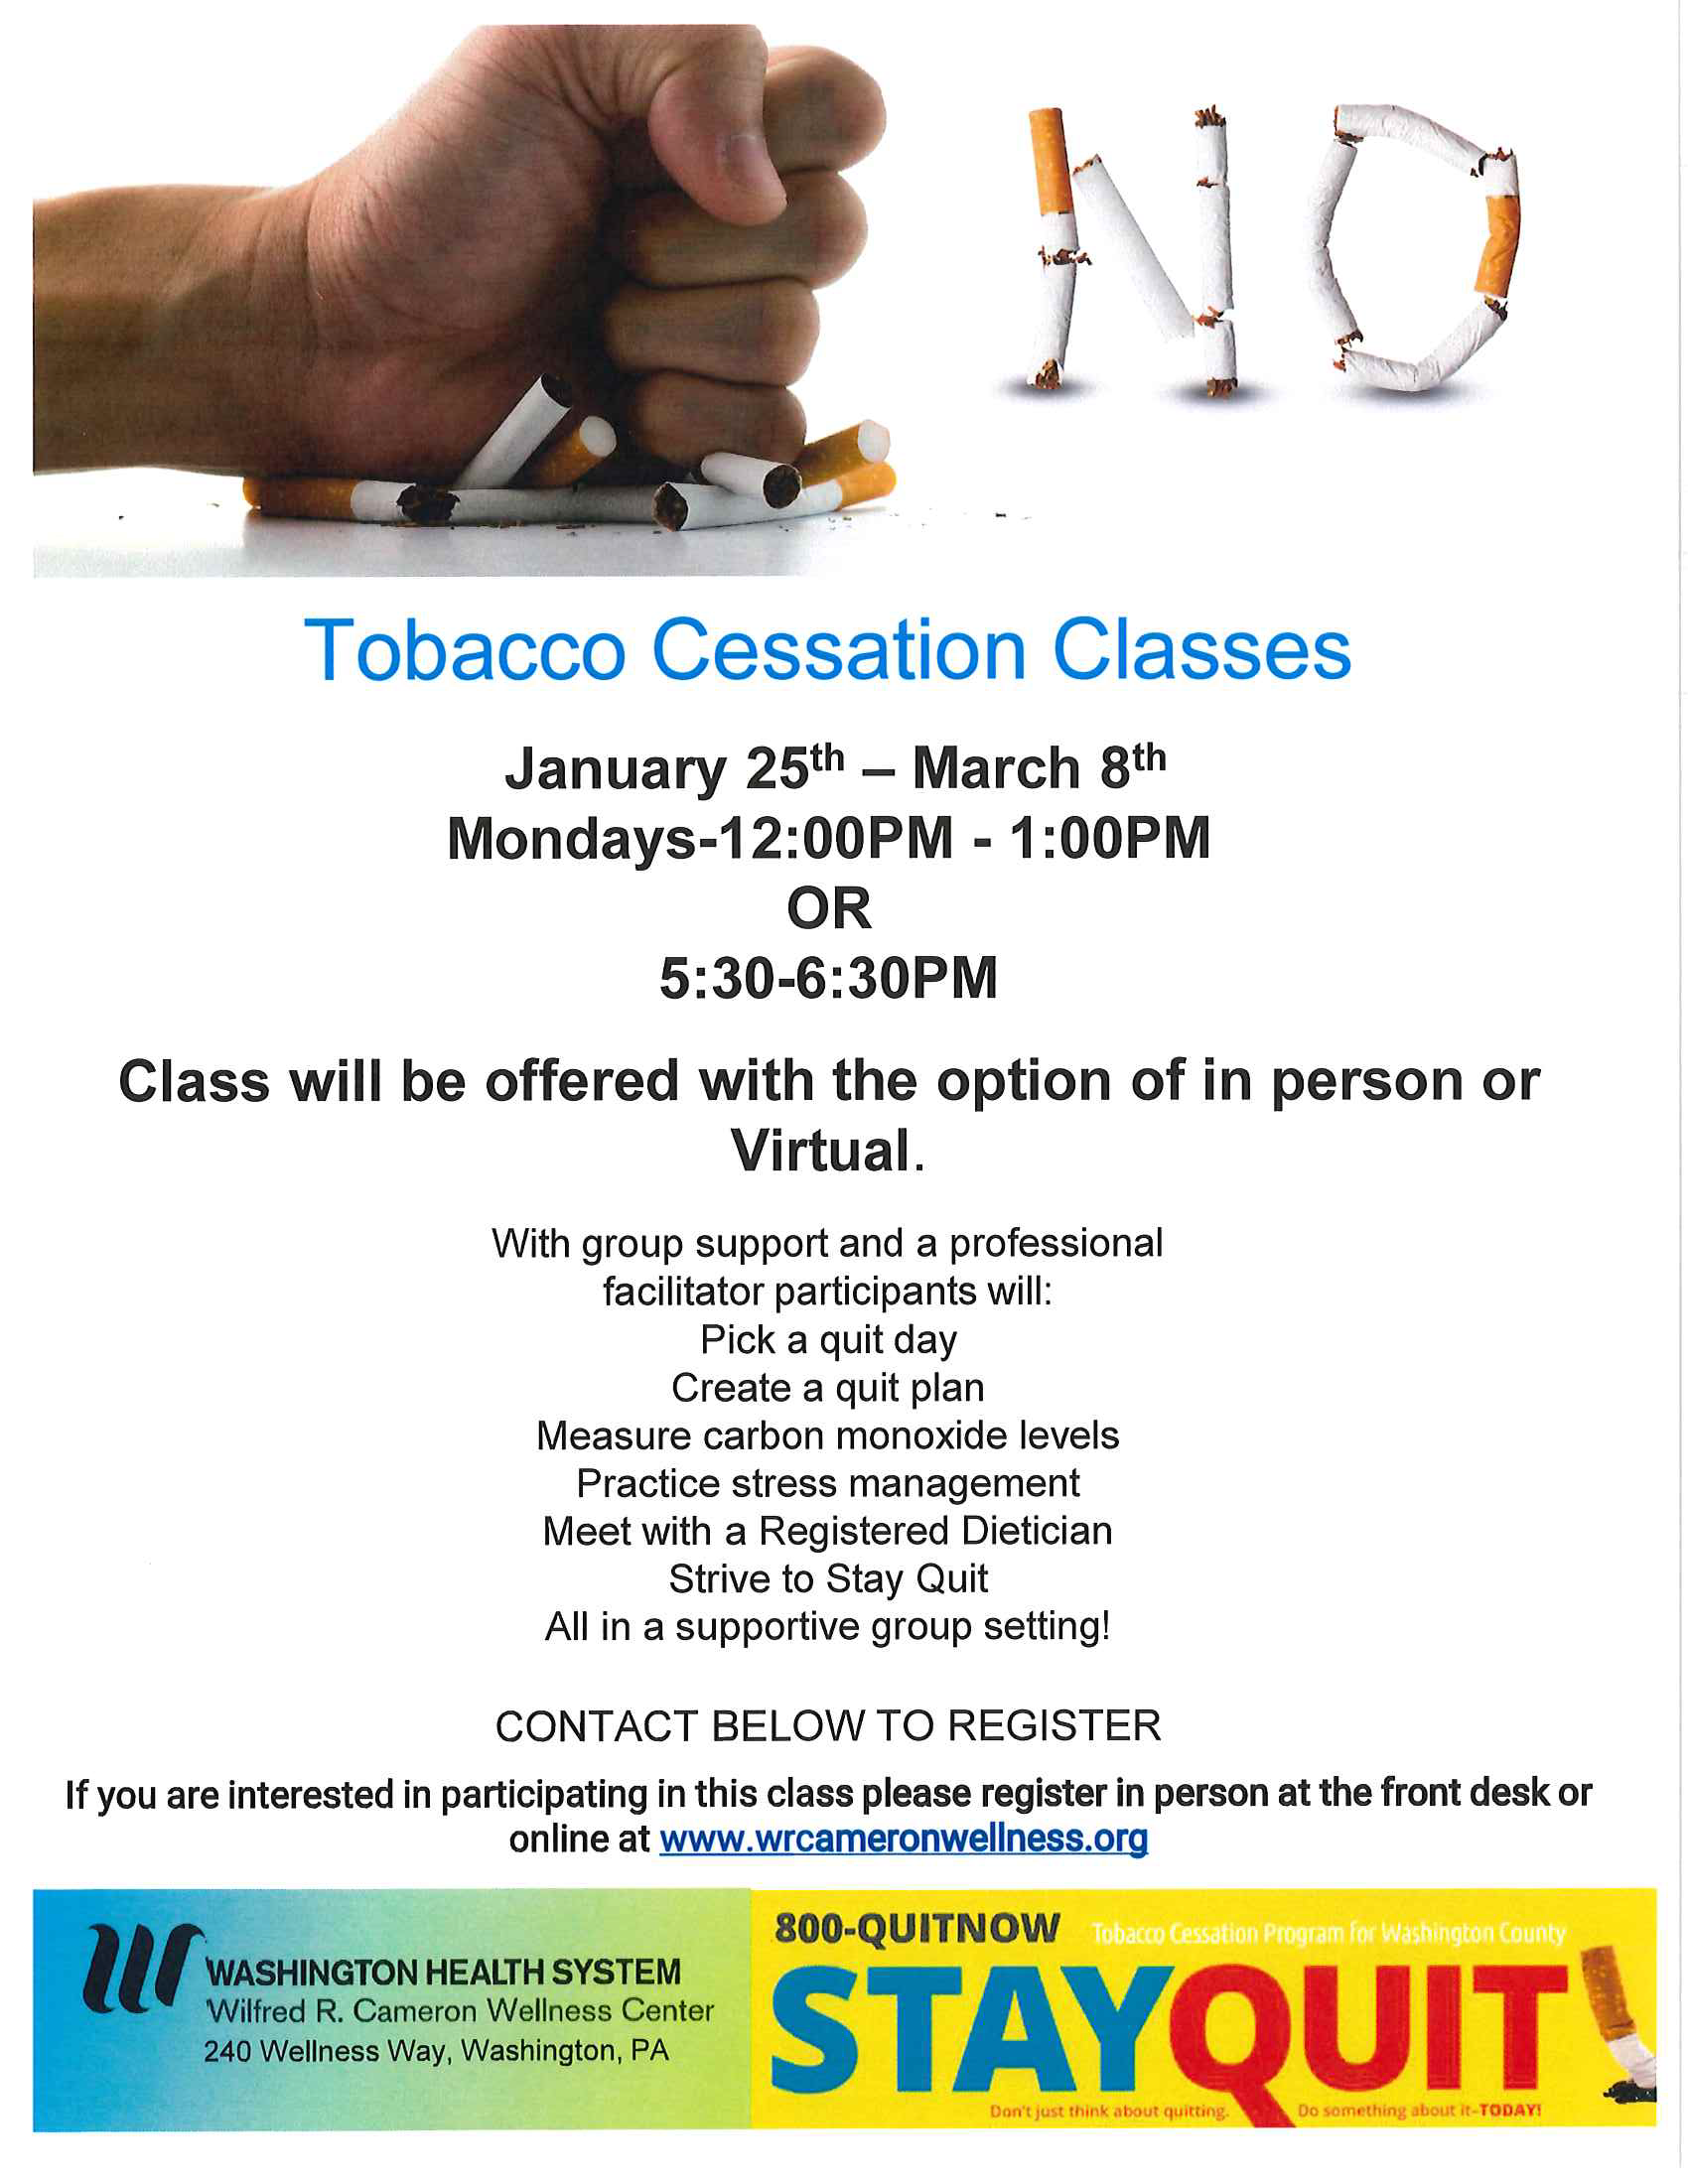 February-Smoking Cessation Classes